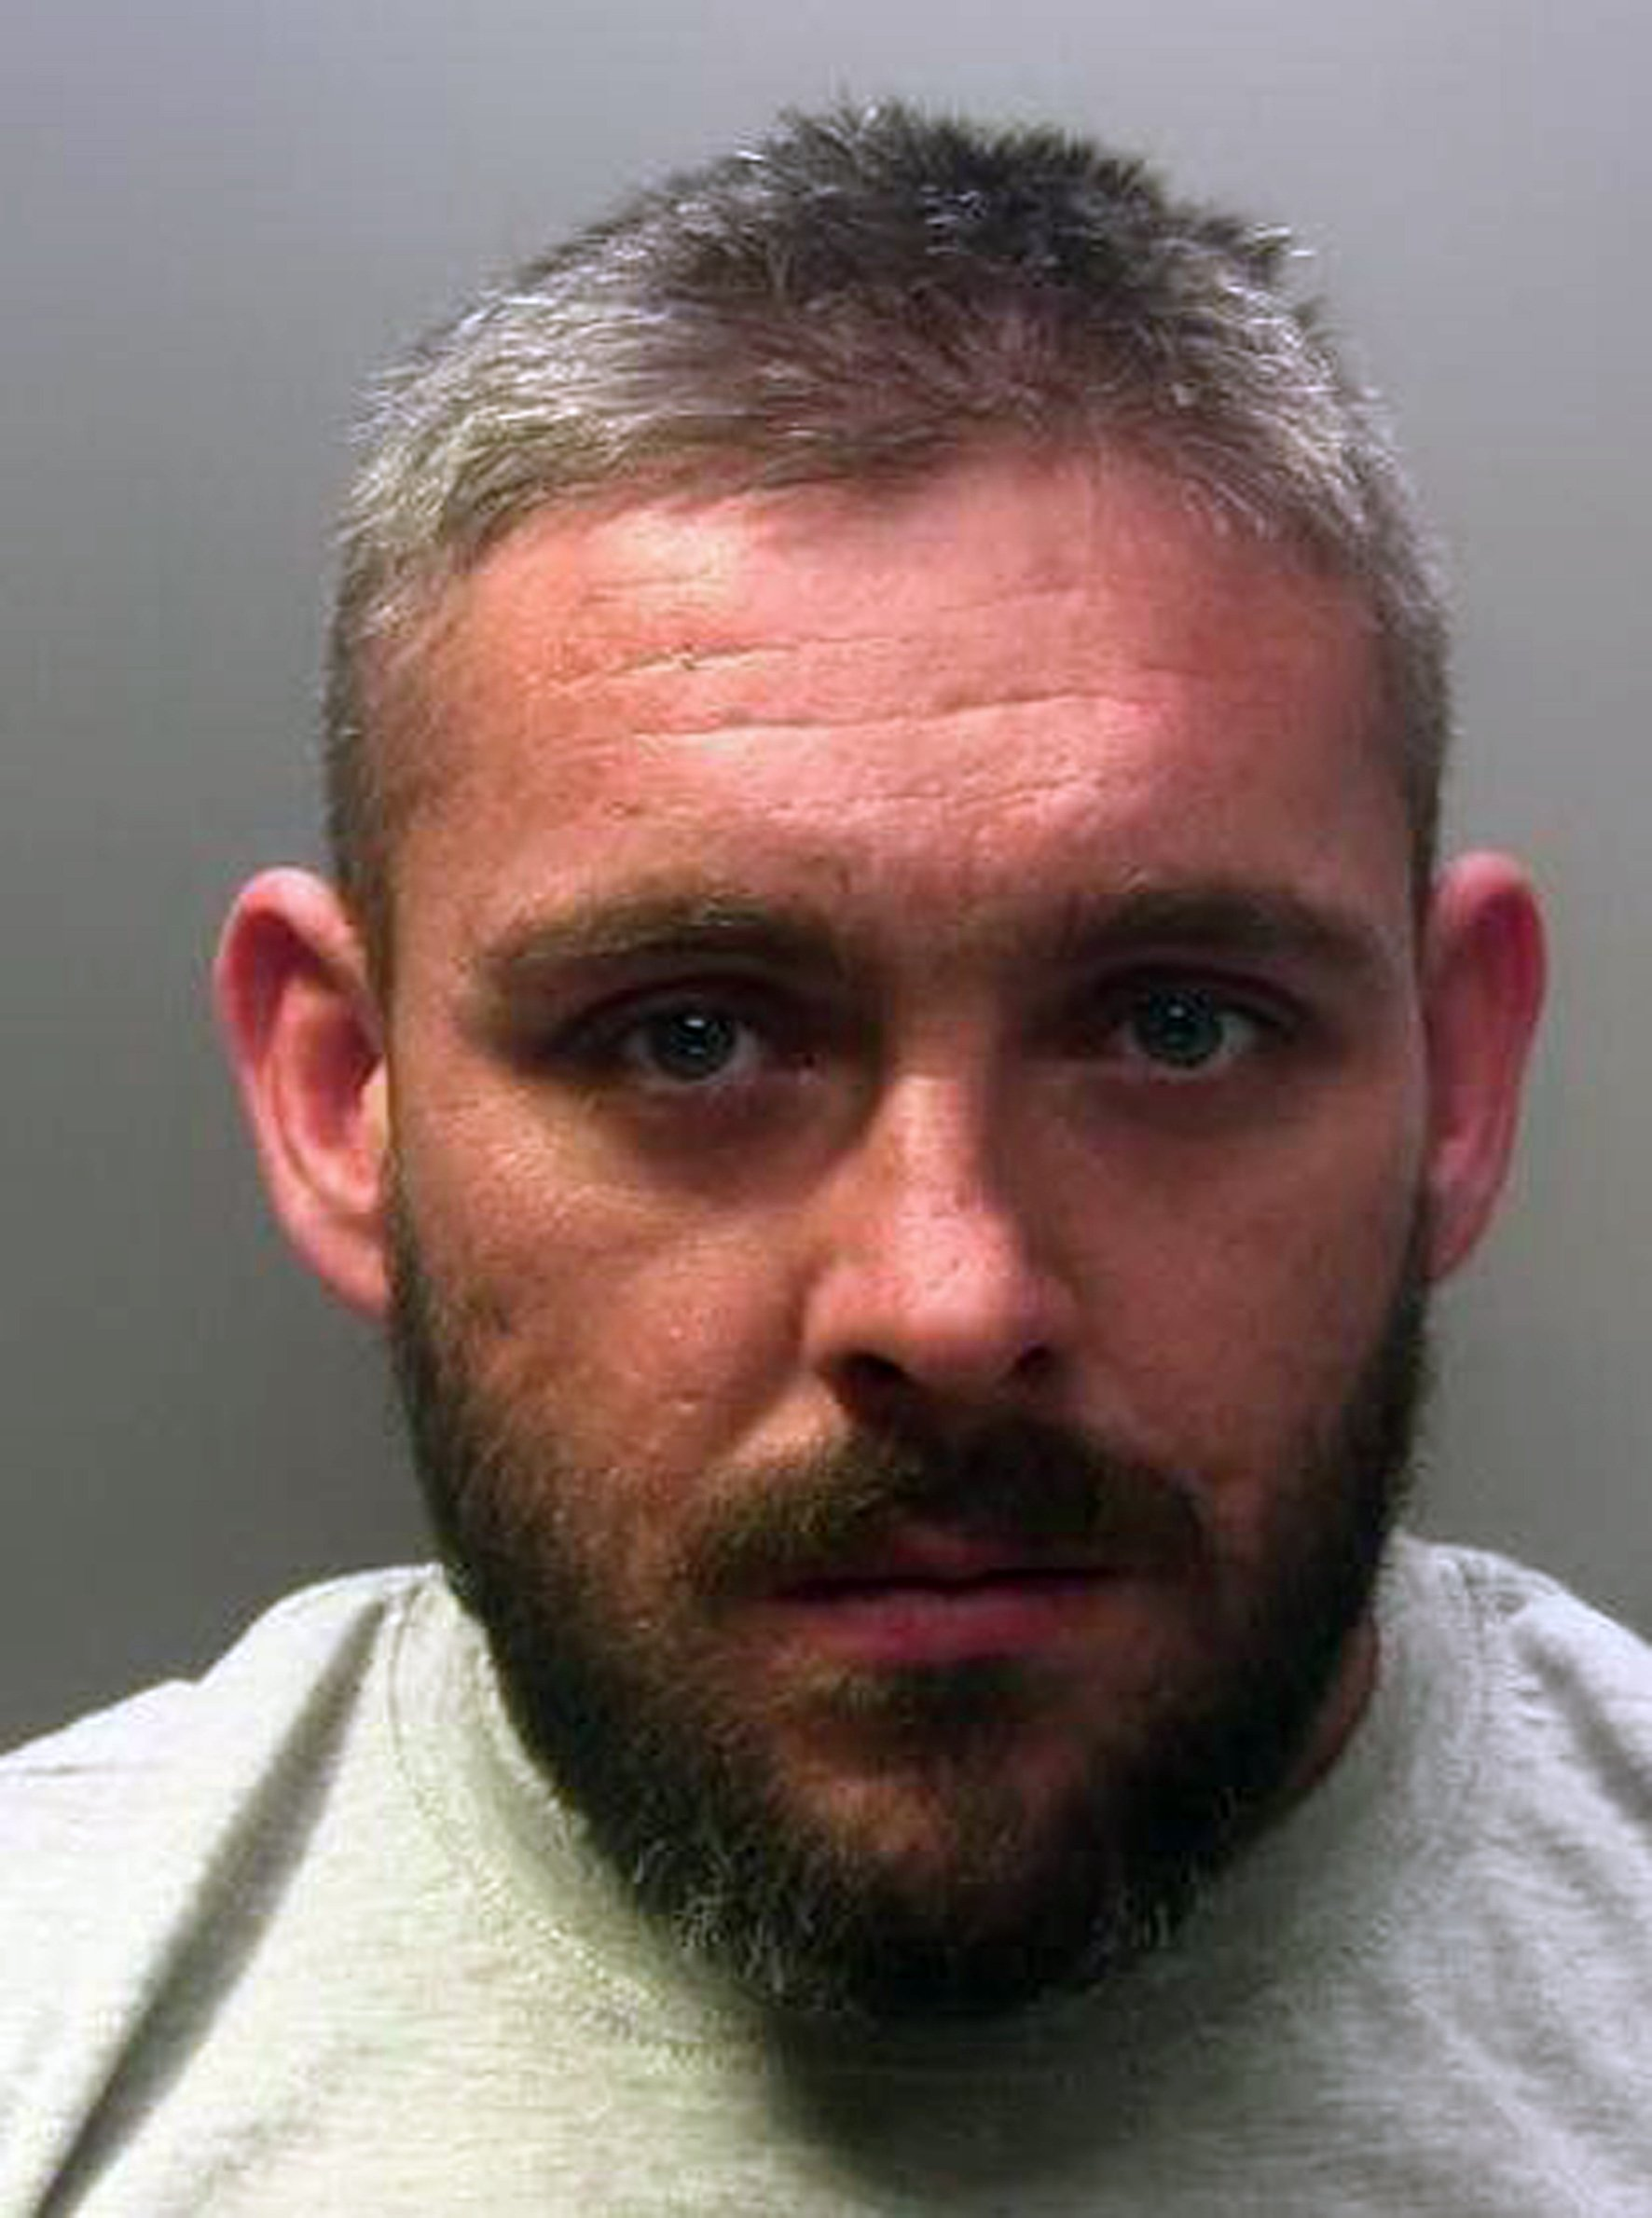 Jamie Richardson who was sentenced at Cardiff Crown Court to 22 months imprisonment for wounding. A football fan savagely bit off a part of his friend¿s ear in a fight outside a club after his team had lost, a court has heard.nJamie Richardson, 31, was sentenced atCardiff Crown Courton Tuesday after pleading guilty to a charge of wounding.nChelsea fan Richardson was drinking at the Columba Club, inNewport, on October 3, to watch his team face Southampton in a Premiership clash.nThe Blues went on to lose to the Saints by three goals to one.nRichardson, who was wearing a Chelsea shirt at the time of the offence, was described by prosecutor Nigel Fryer as being ¿inebriated¿ and being a ¿thorough nuisance¿.nVictim Richard Avery, an acquaintance of Richardson¿s, was also drinking in the club and described the defendant as being ¿a bit off¿ with him.nMr Avery suggested to Richardson to go outside and calm down and followed him outside.nWhat ensued was a fight between Richardson and Mr Avery in which Richardson had the upper hand. The fight was caught on CCTV and was shown to the court.nMr Fryer said: ¿Both of them were sparring like boxers.n¿Mr Richardson was on top and that¿s when the bite takes place to the ear.n¿You can clearly see Mr Avery holding his ear on the CCTV footage.¿